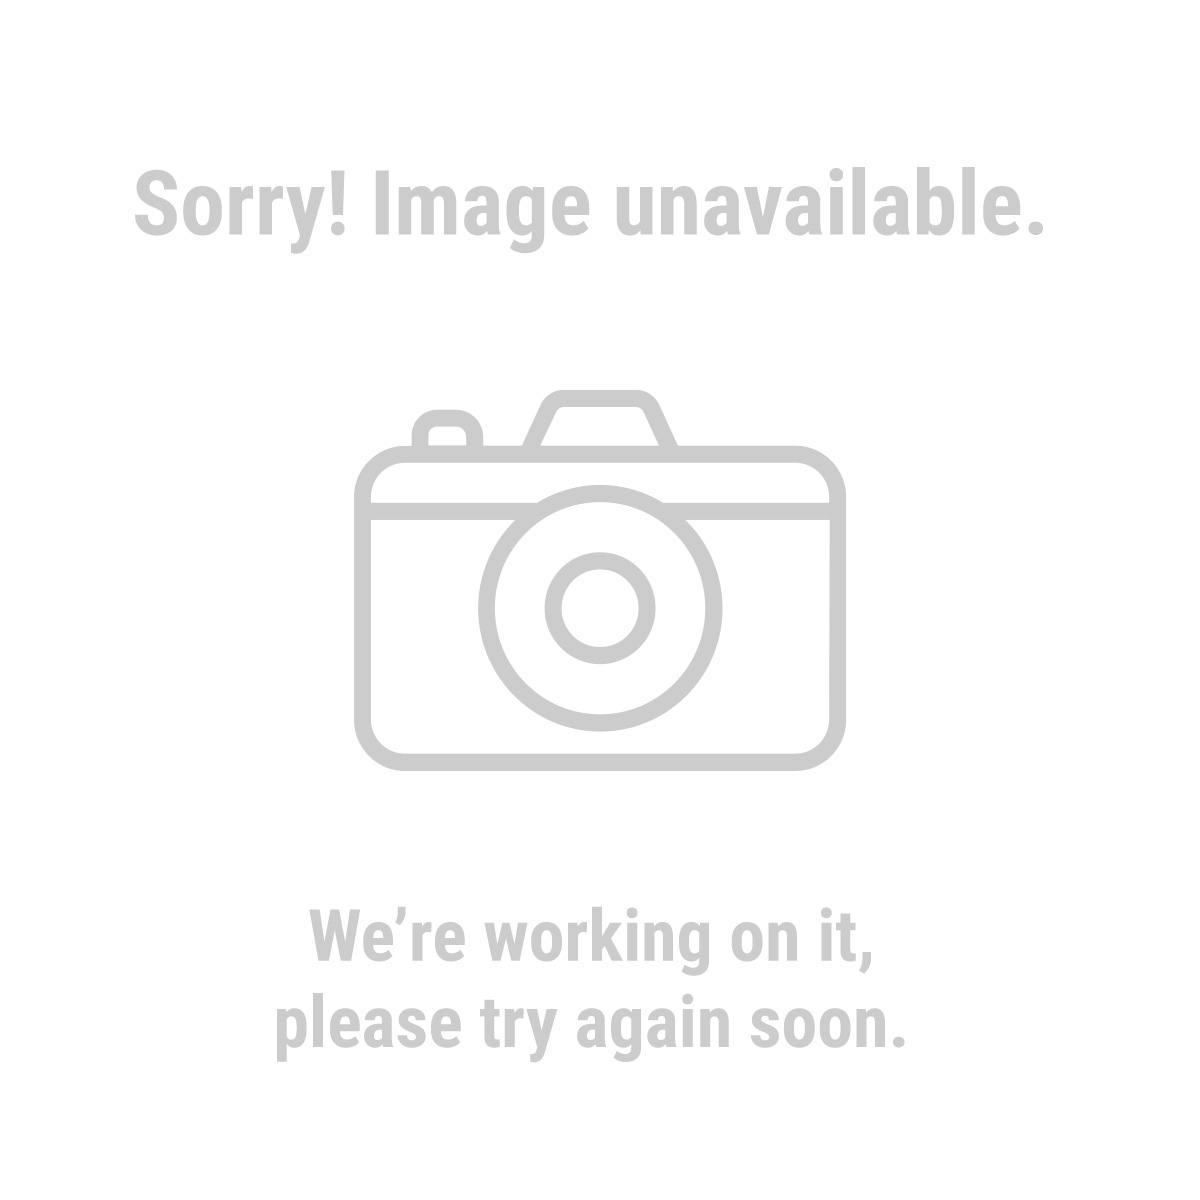 Haul Master Shop 69377 Drywall Panel Hoist